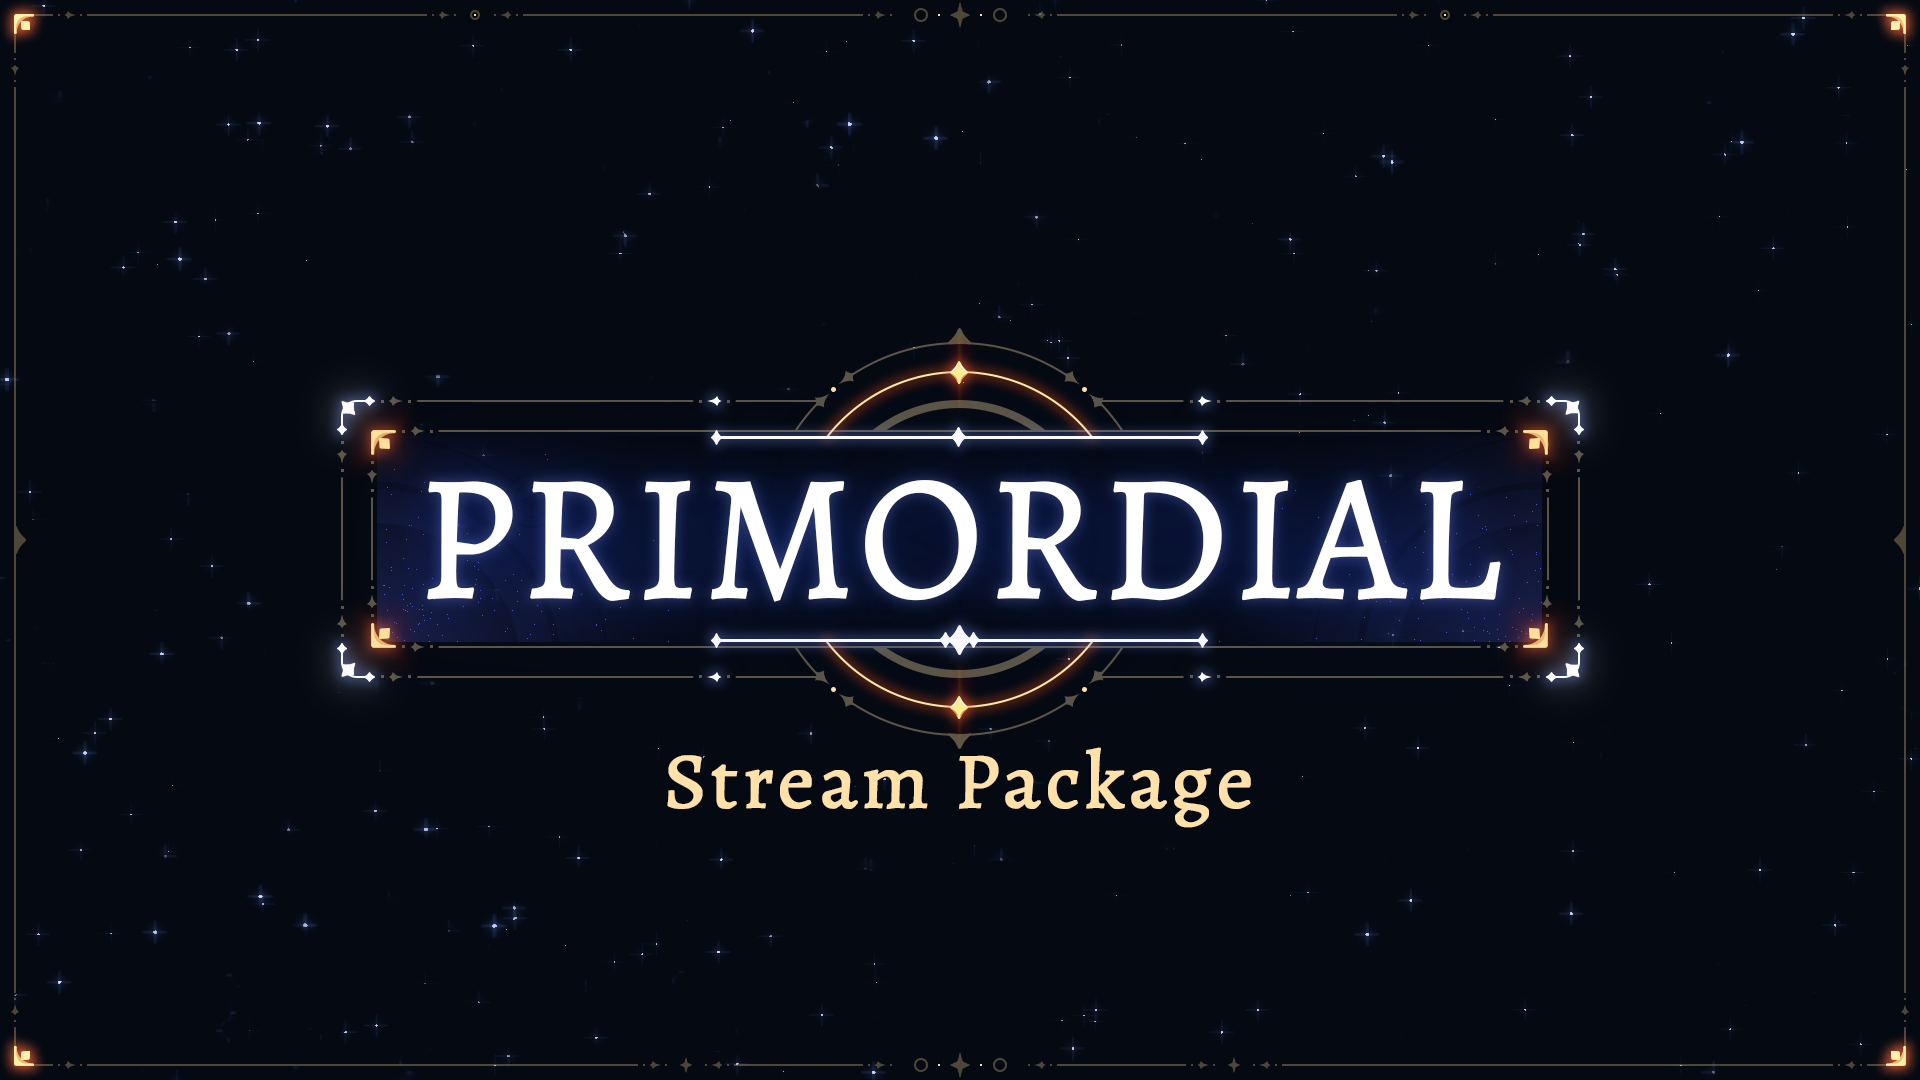 Primordial Stream Package